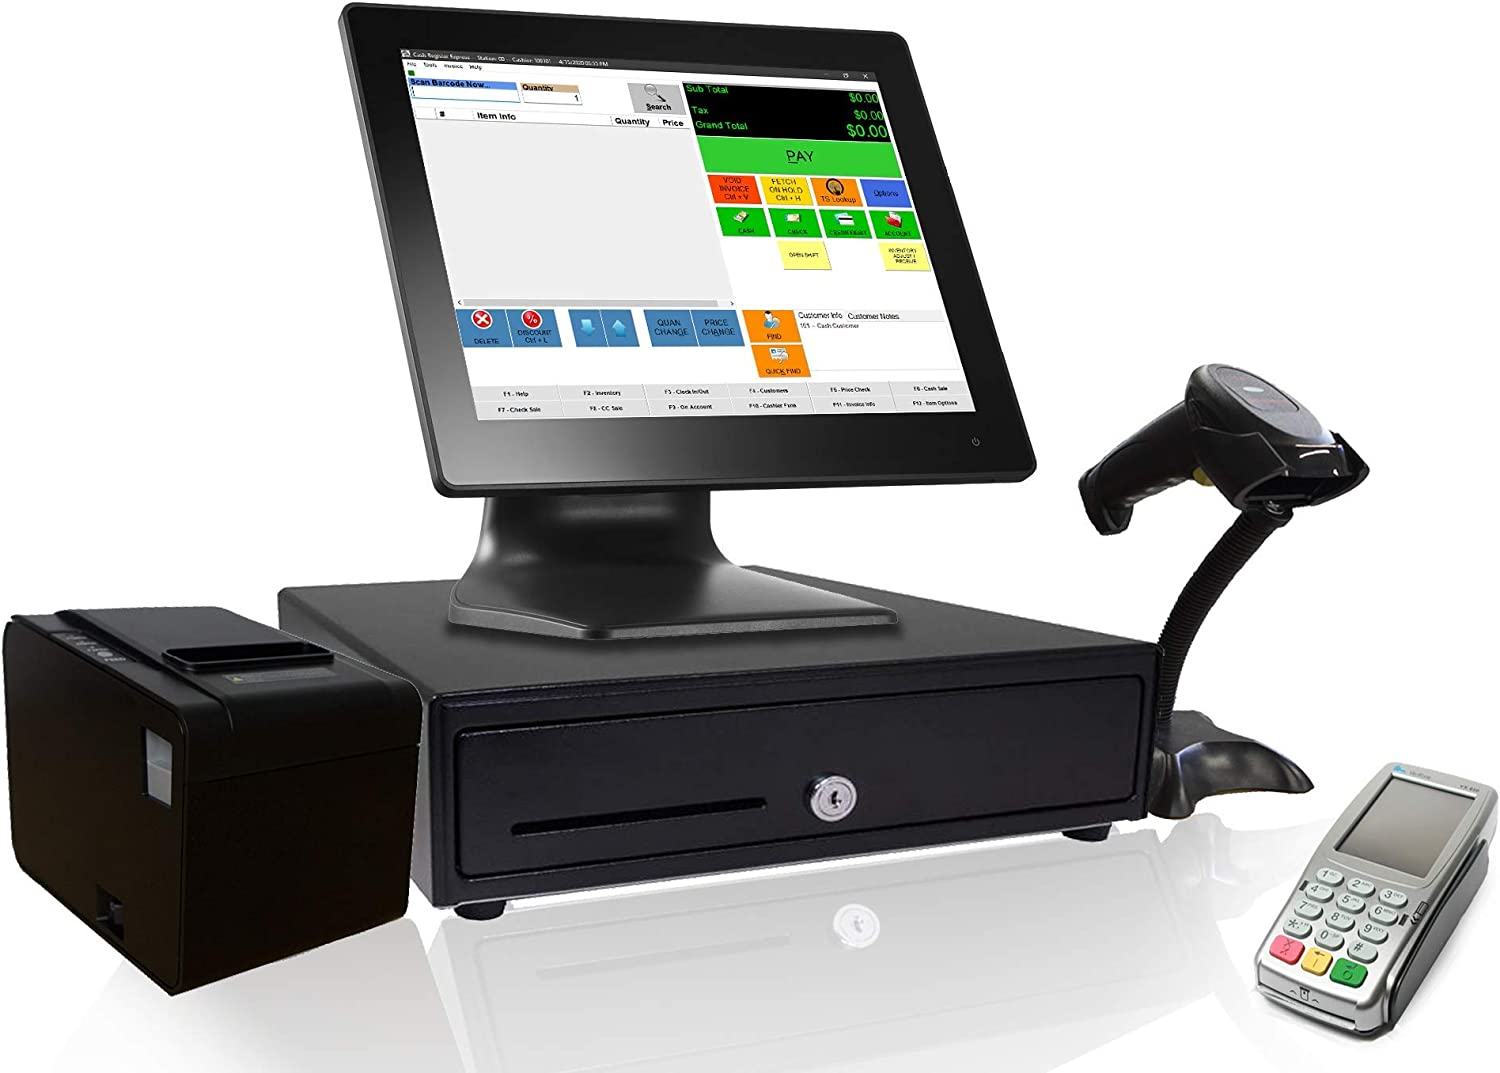 Retail Point of Sale System and Cash Register Drawer CRE Includes Touchscreen PC Wireless Scanner POS Software Receipt Printer